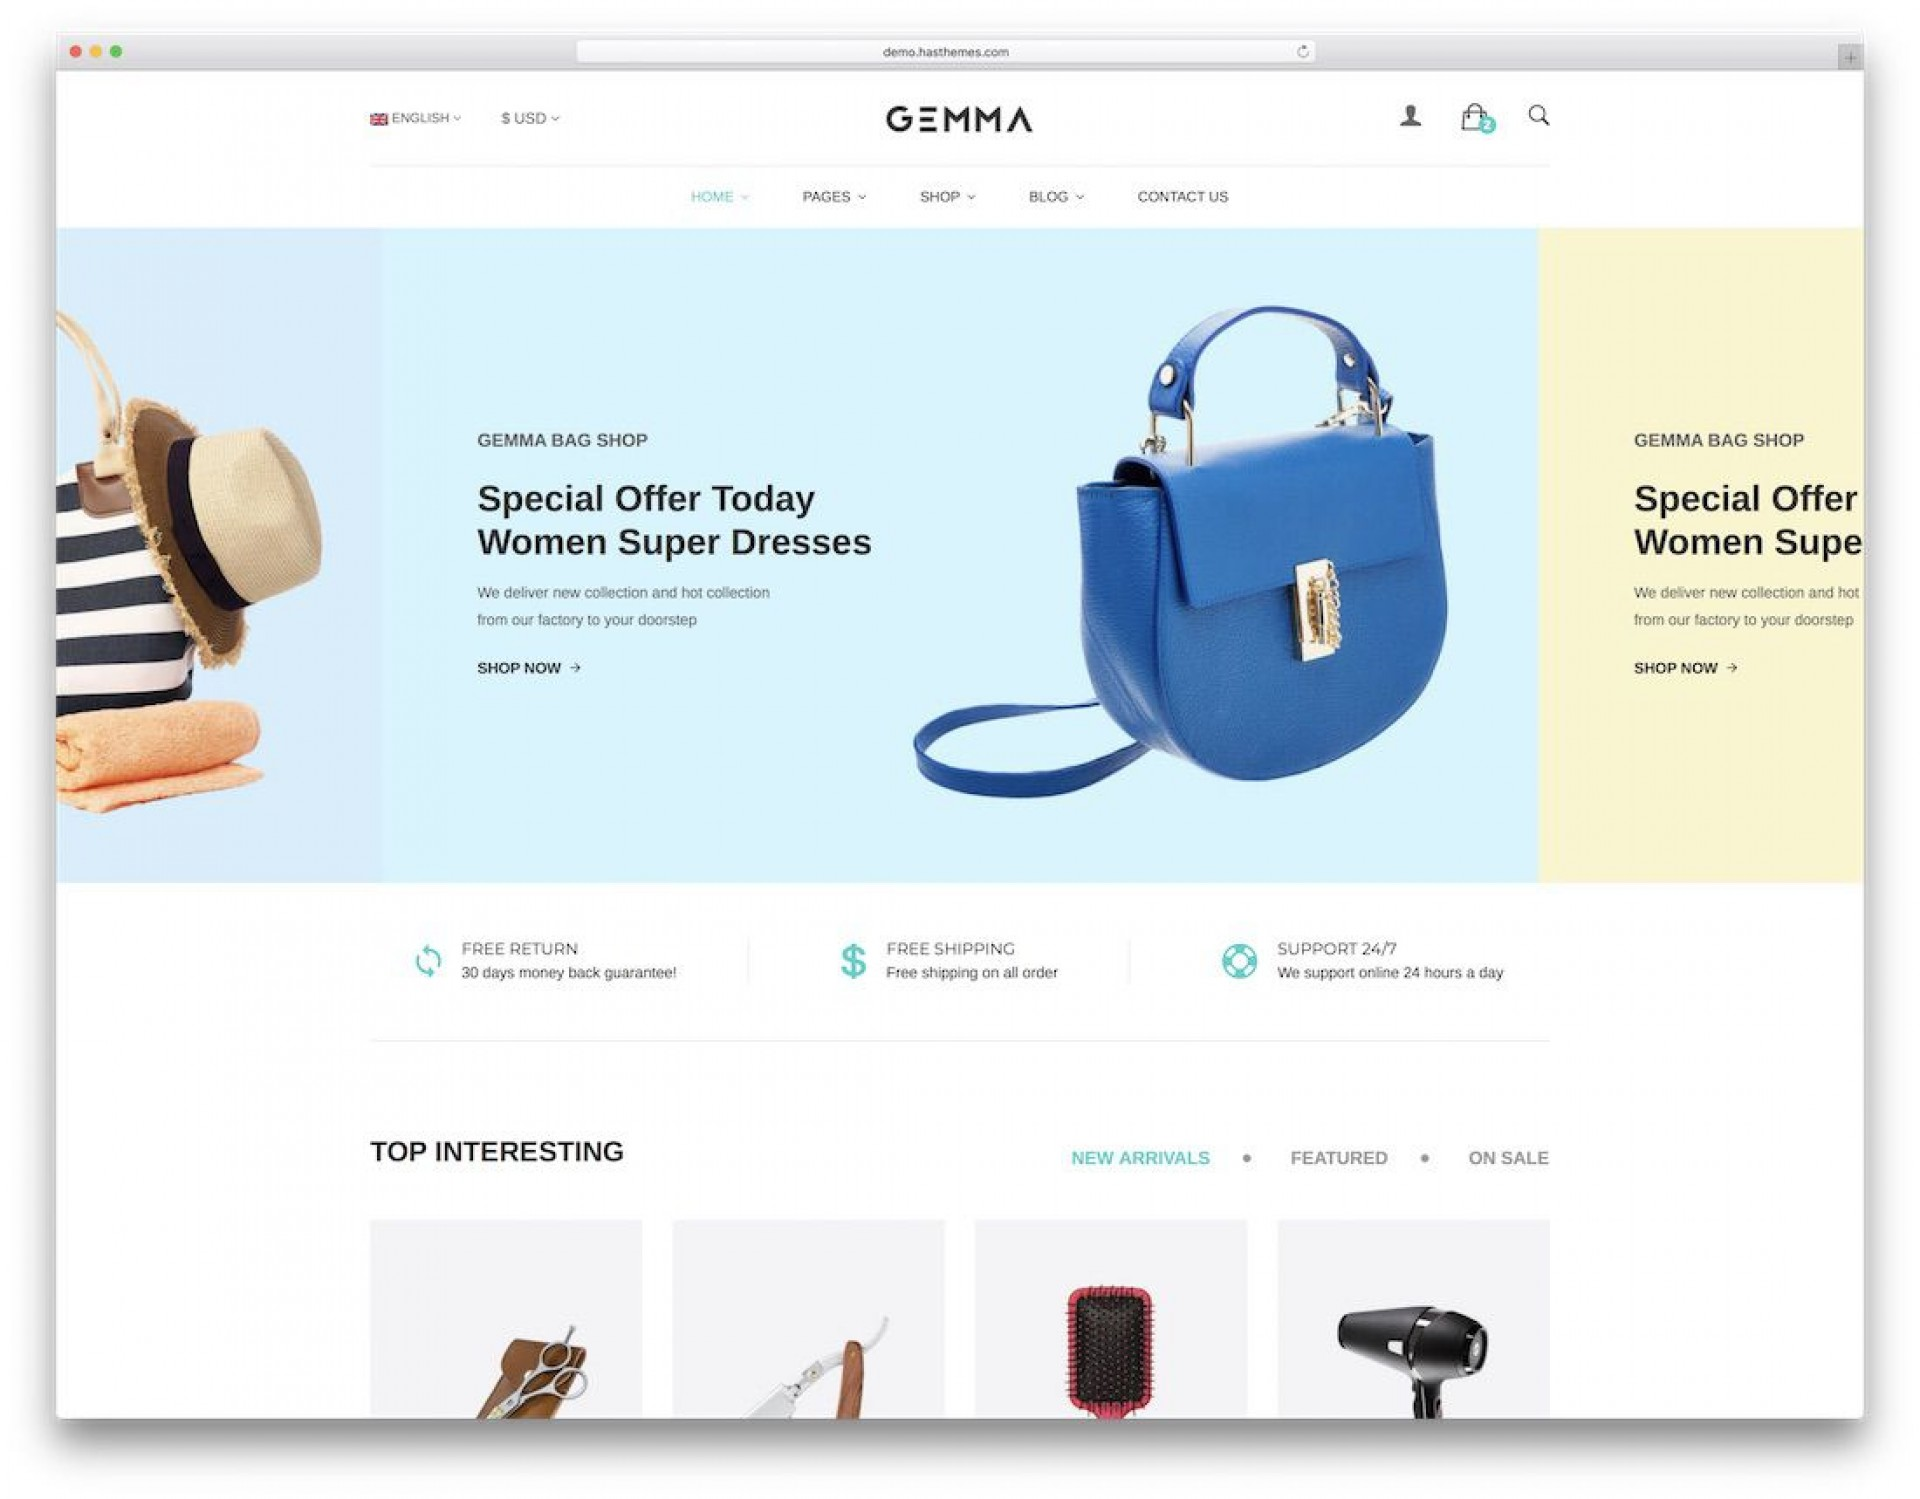 009 Top Free Commerce Website Template Sample  Wordpres Ecommerce Download Responsive Html Cs1920